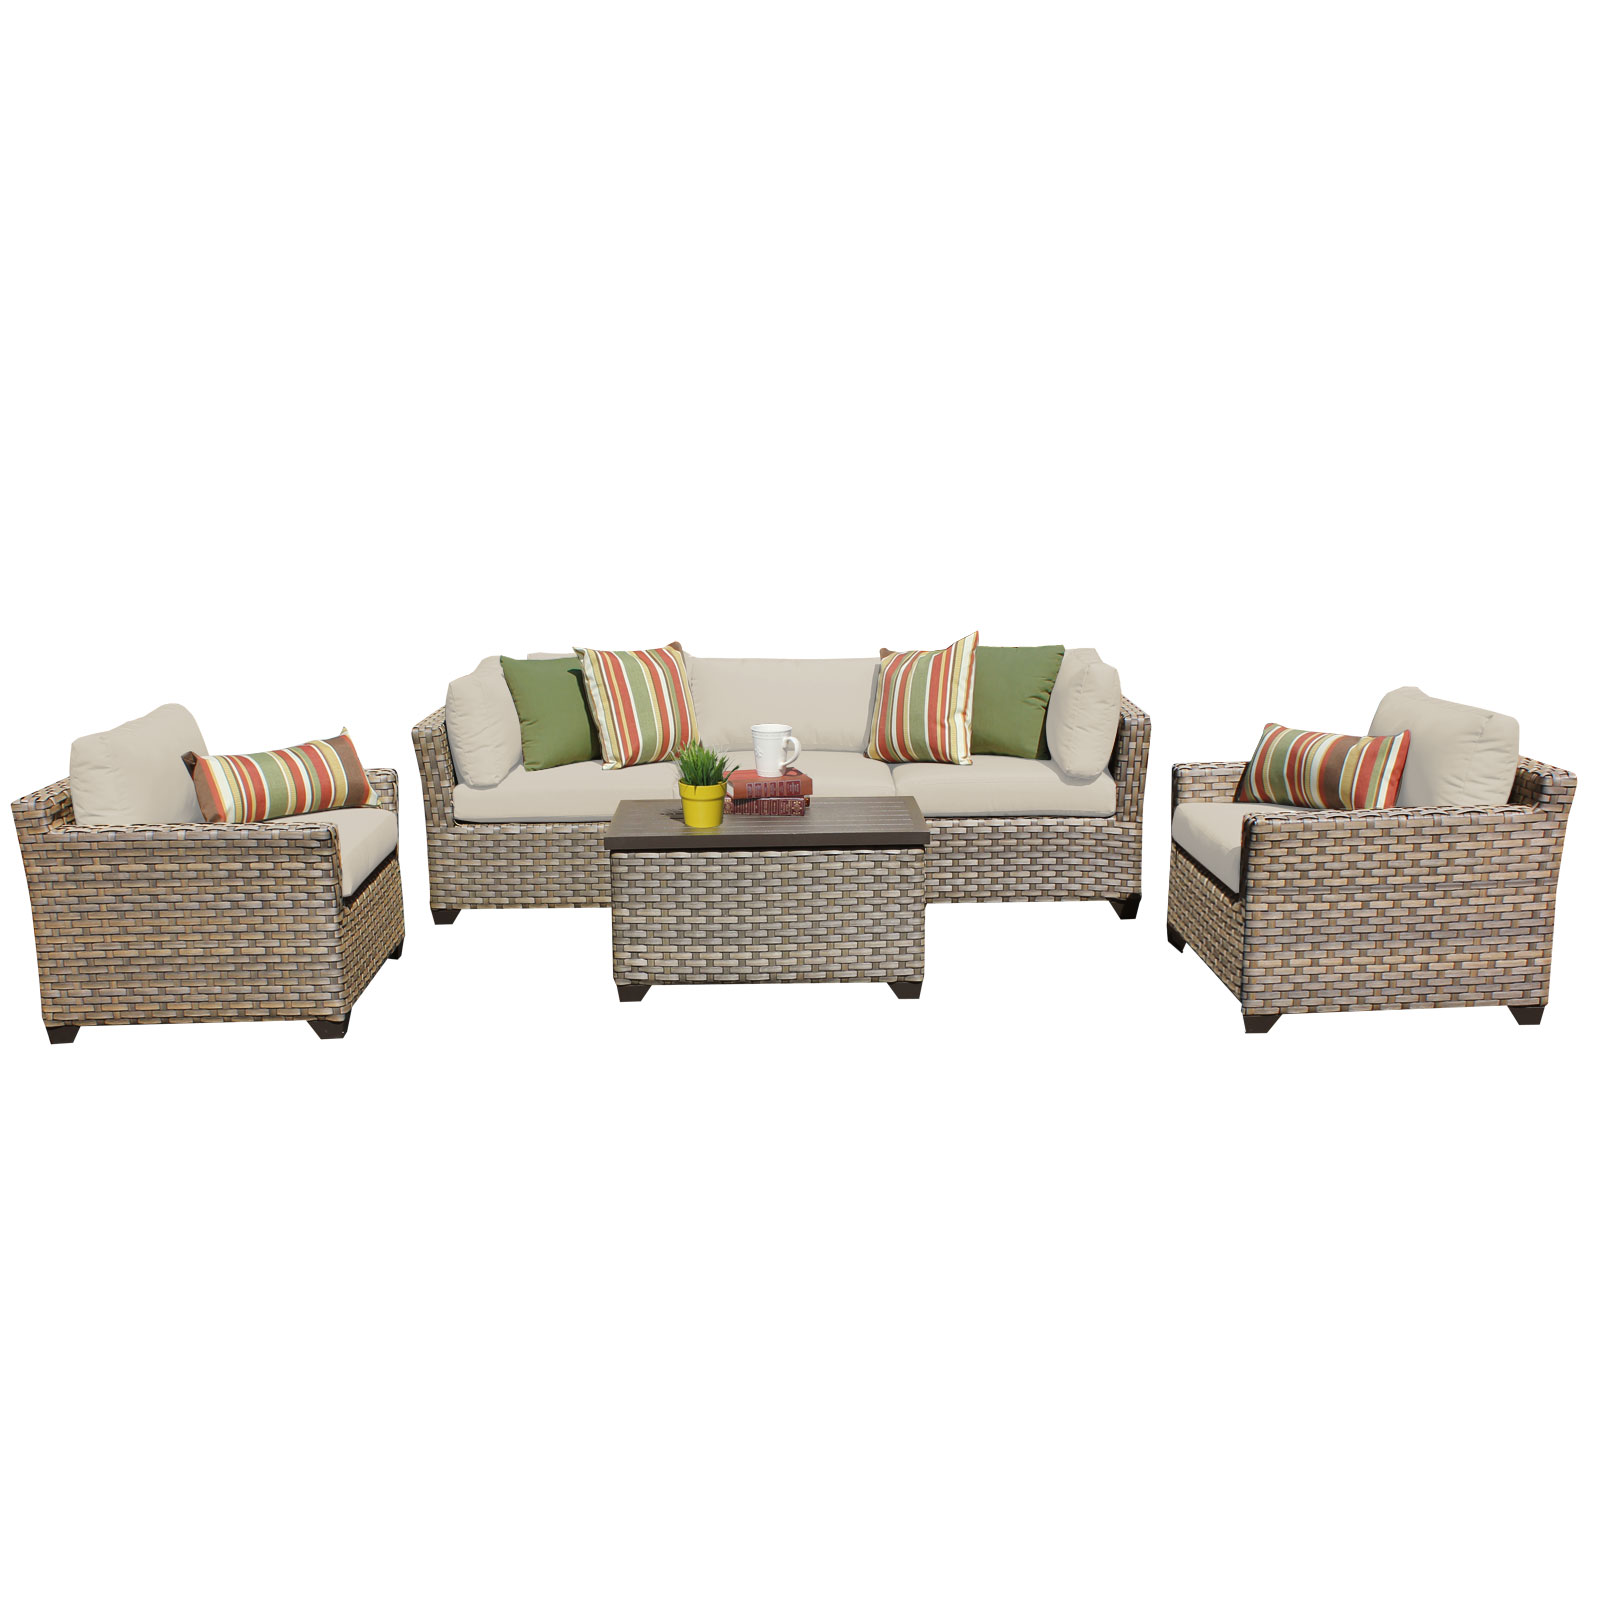 Hampton 6 Piece Outdoor Wicker Patio Furniture Set 06b by TK Classics